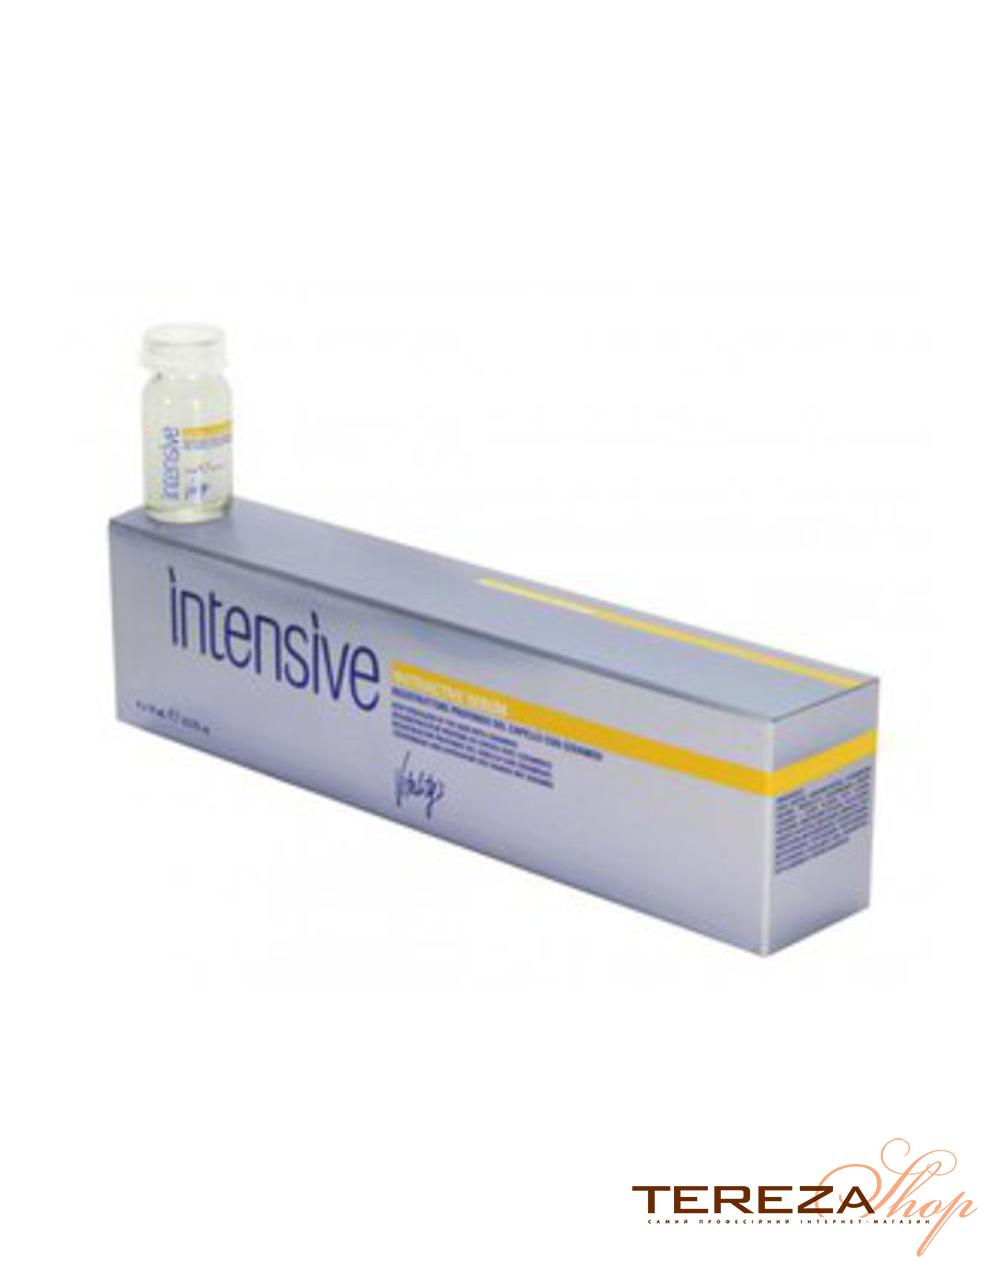 INTENSIVE NUTRIACTIVE SERUM VITALITY'S | Tereza Shop